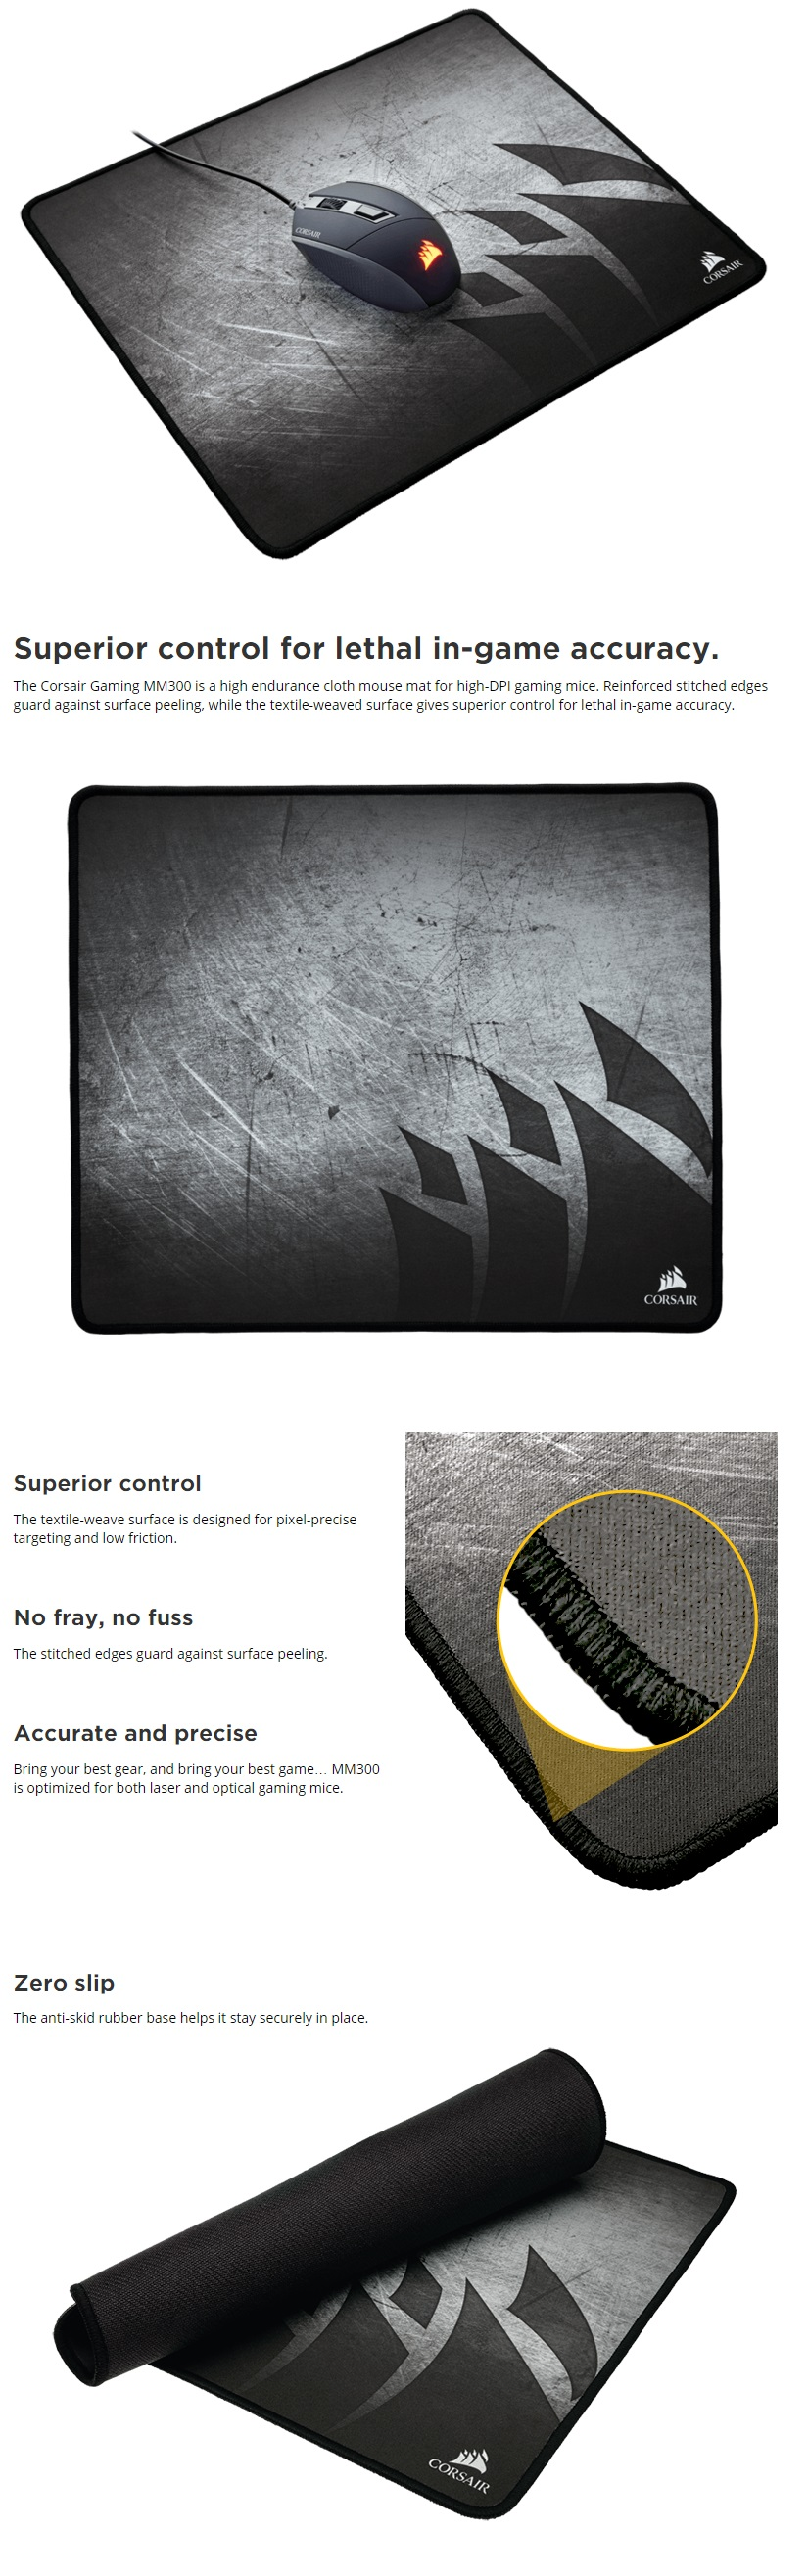 A large marketing image providing additional information about the product Corsair Gaming MM300 Cloth Gaming Mousemat - Additional alt info not provided